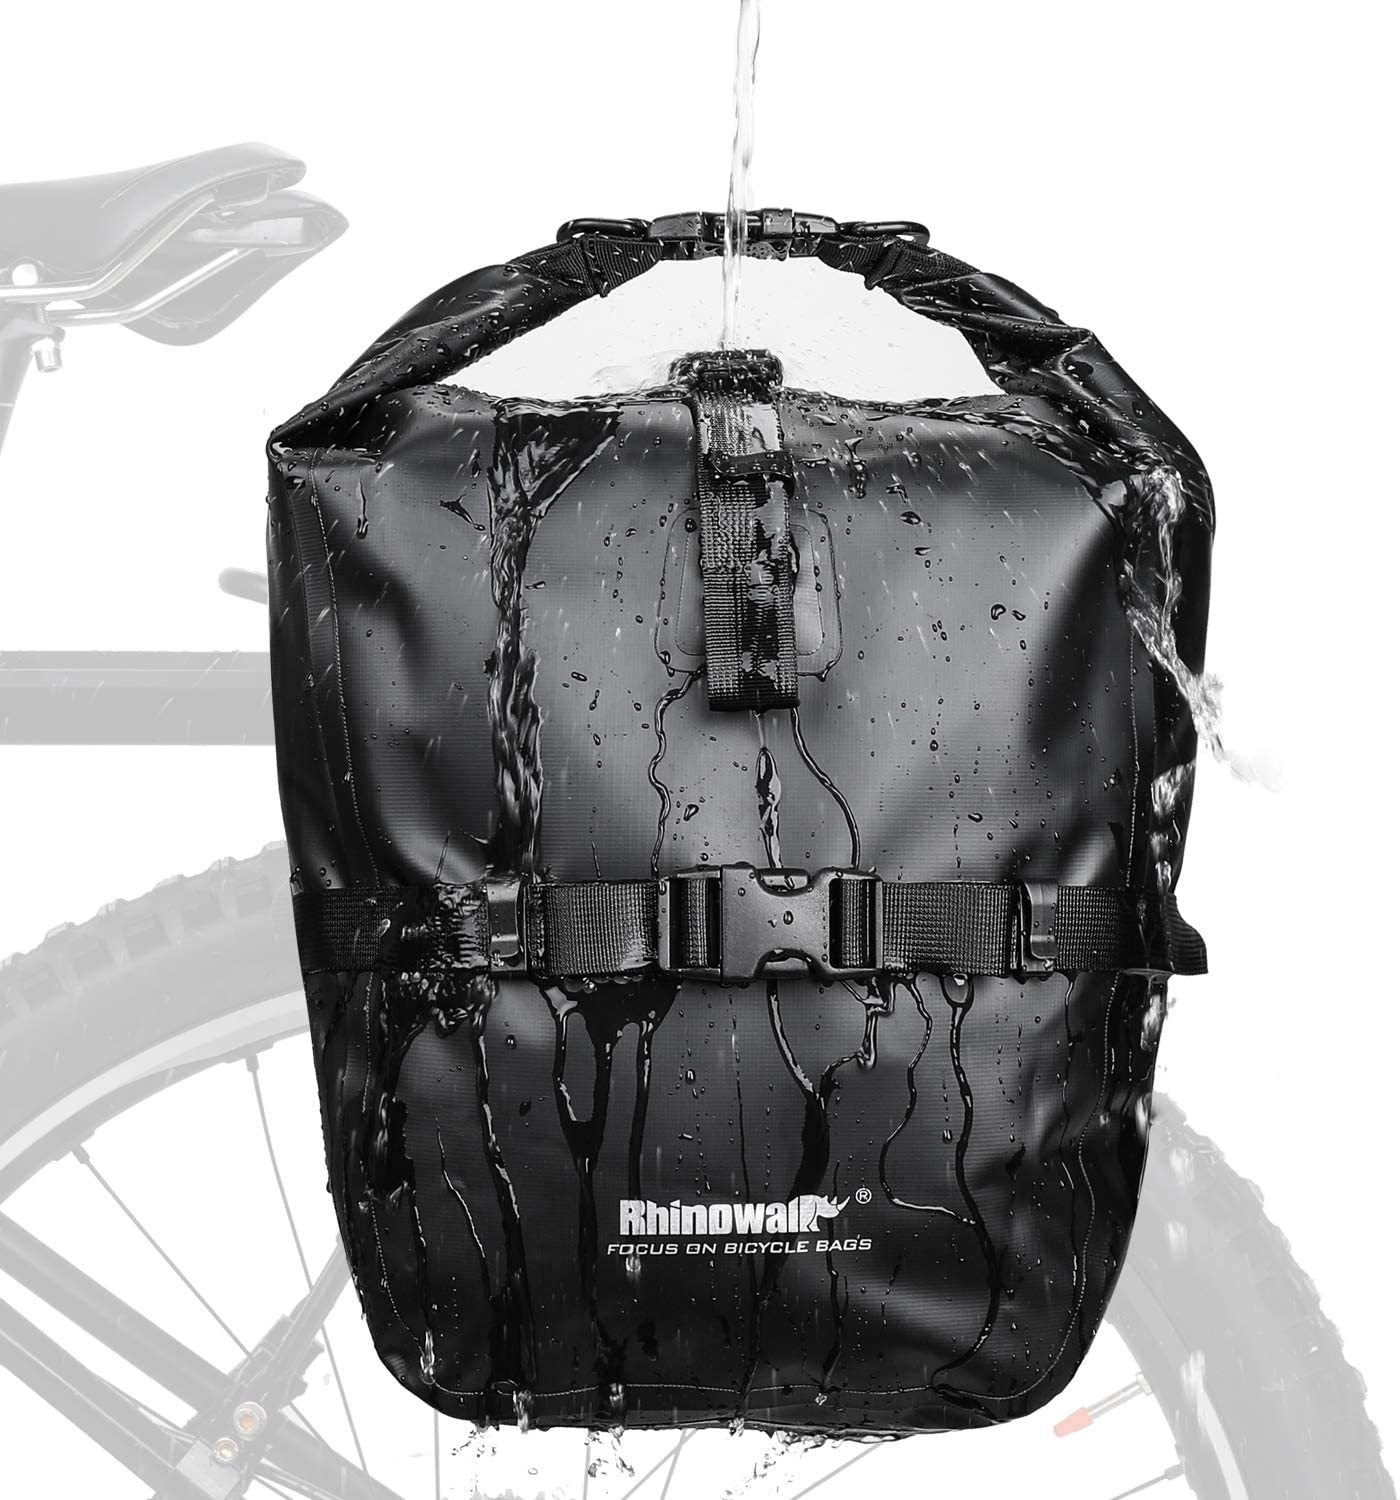 Rhinowalk 20L Bike Bag Waterproof Bicycle Pannier Rear Seat Bag for Cycling Bicycling Traveling Riding